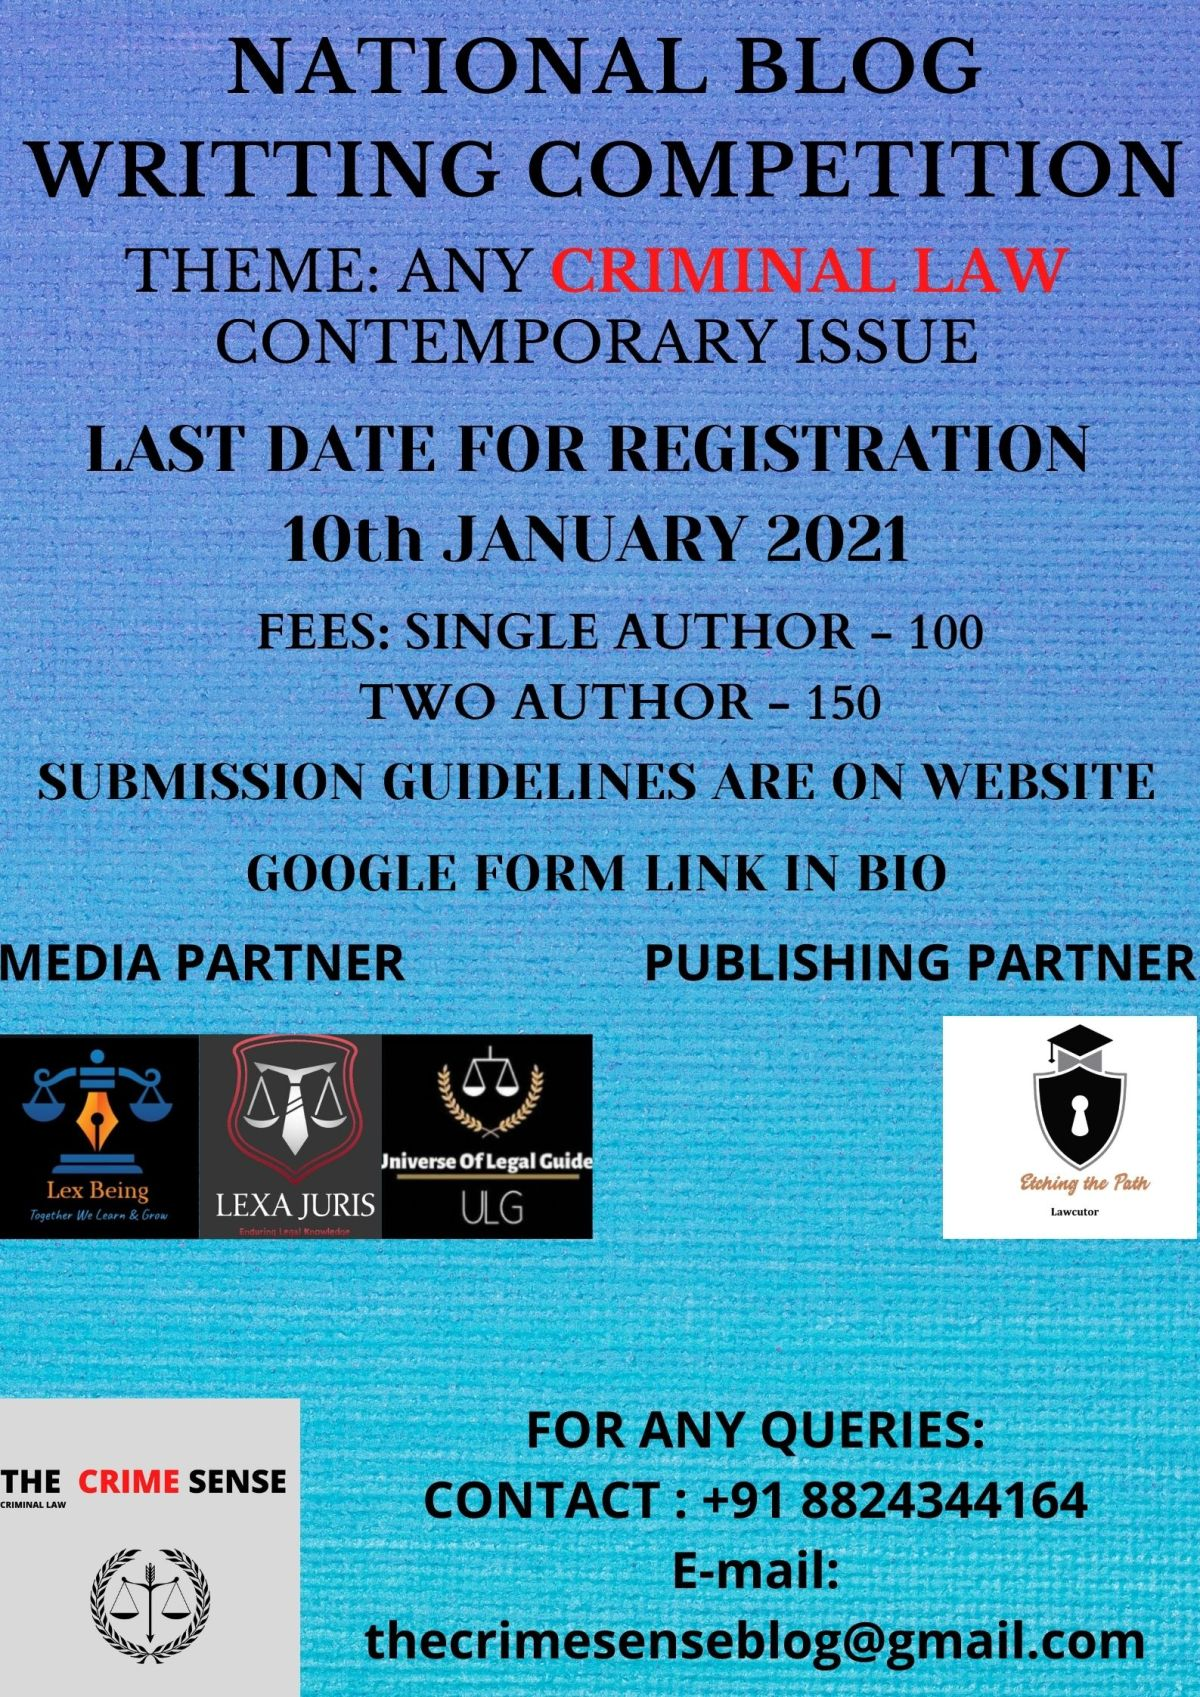 National Blog Writing Competition by The CrimeSense